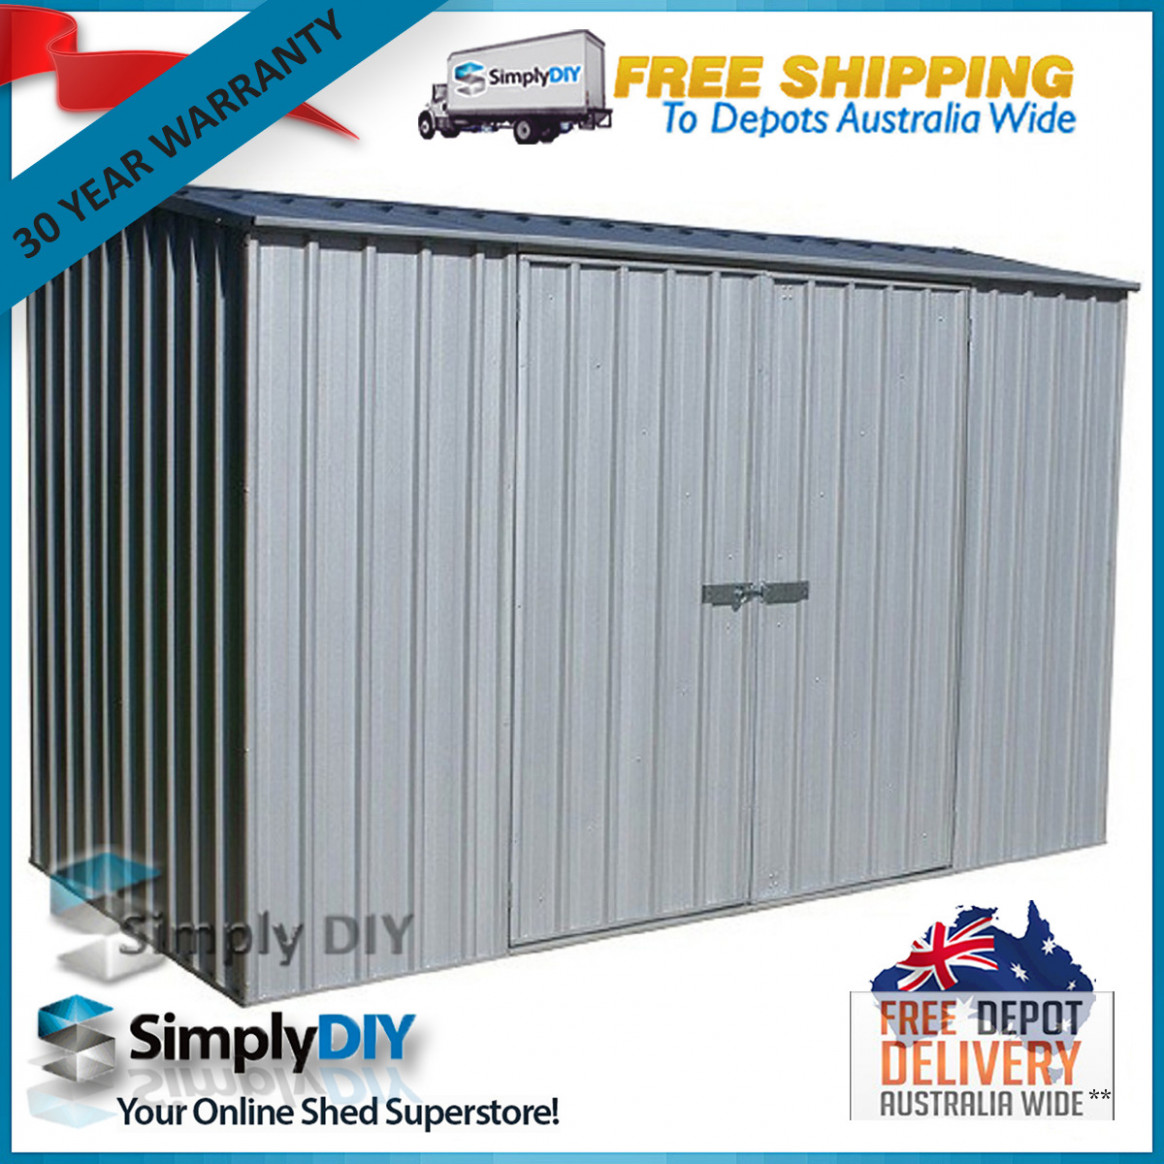 Details About ABSCO PREMIER GARDEN SHED 100m X 10